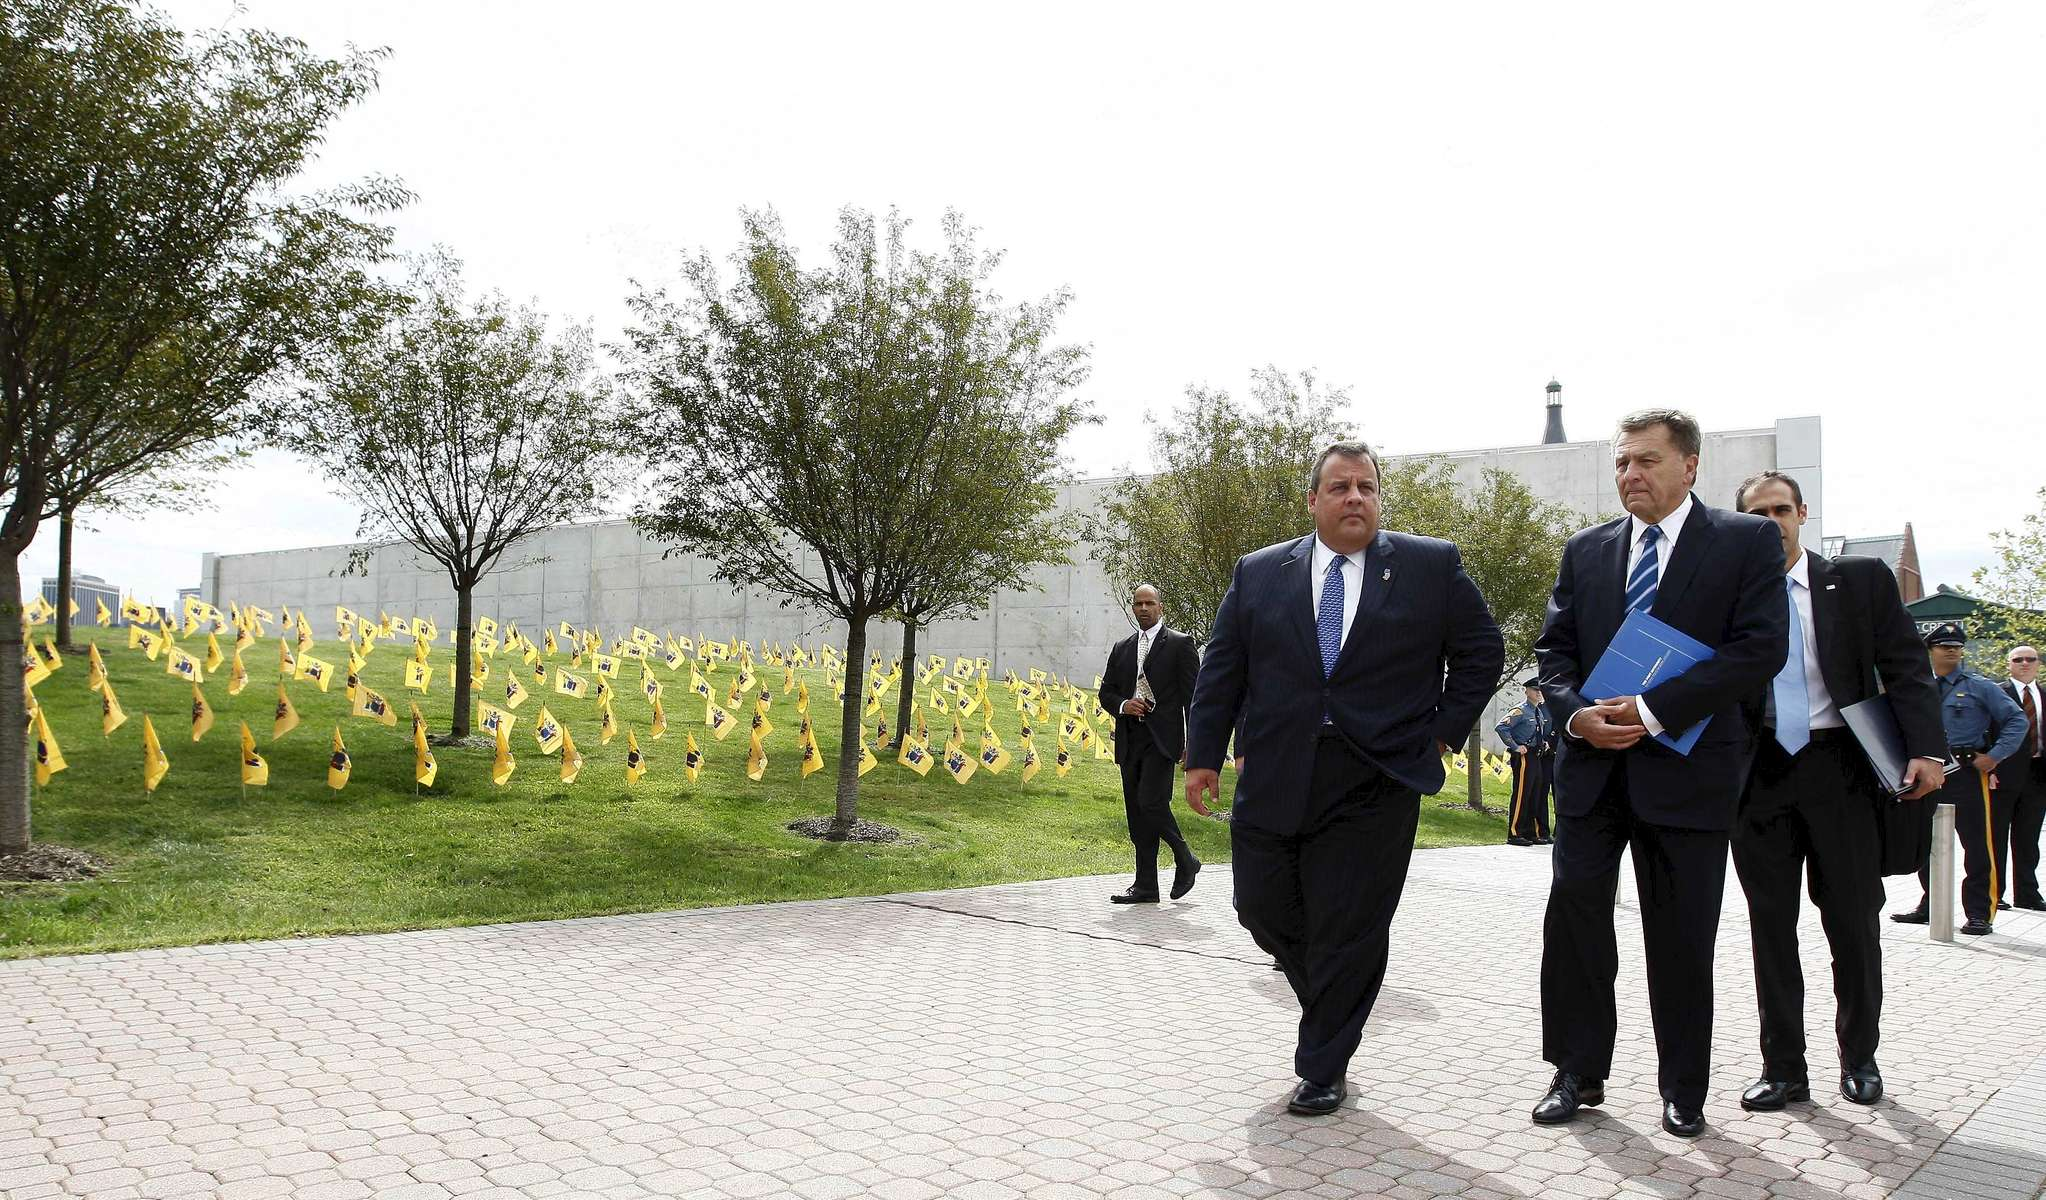 Governor Chris Christie and Port Authority of New York and New Jersey Chairman David Samson arrive at the Empty Sky Memorial Dedication at Liberty State Park in Jersey City, N.J. on Saturday, Sept. 10, 2011. (© Governor's Office / Photographer: Tim Larsen)